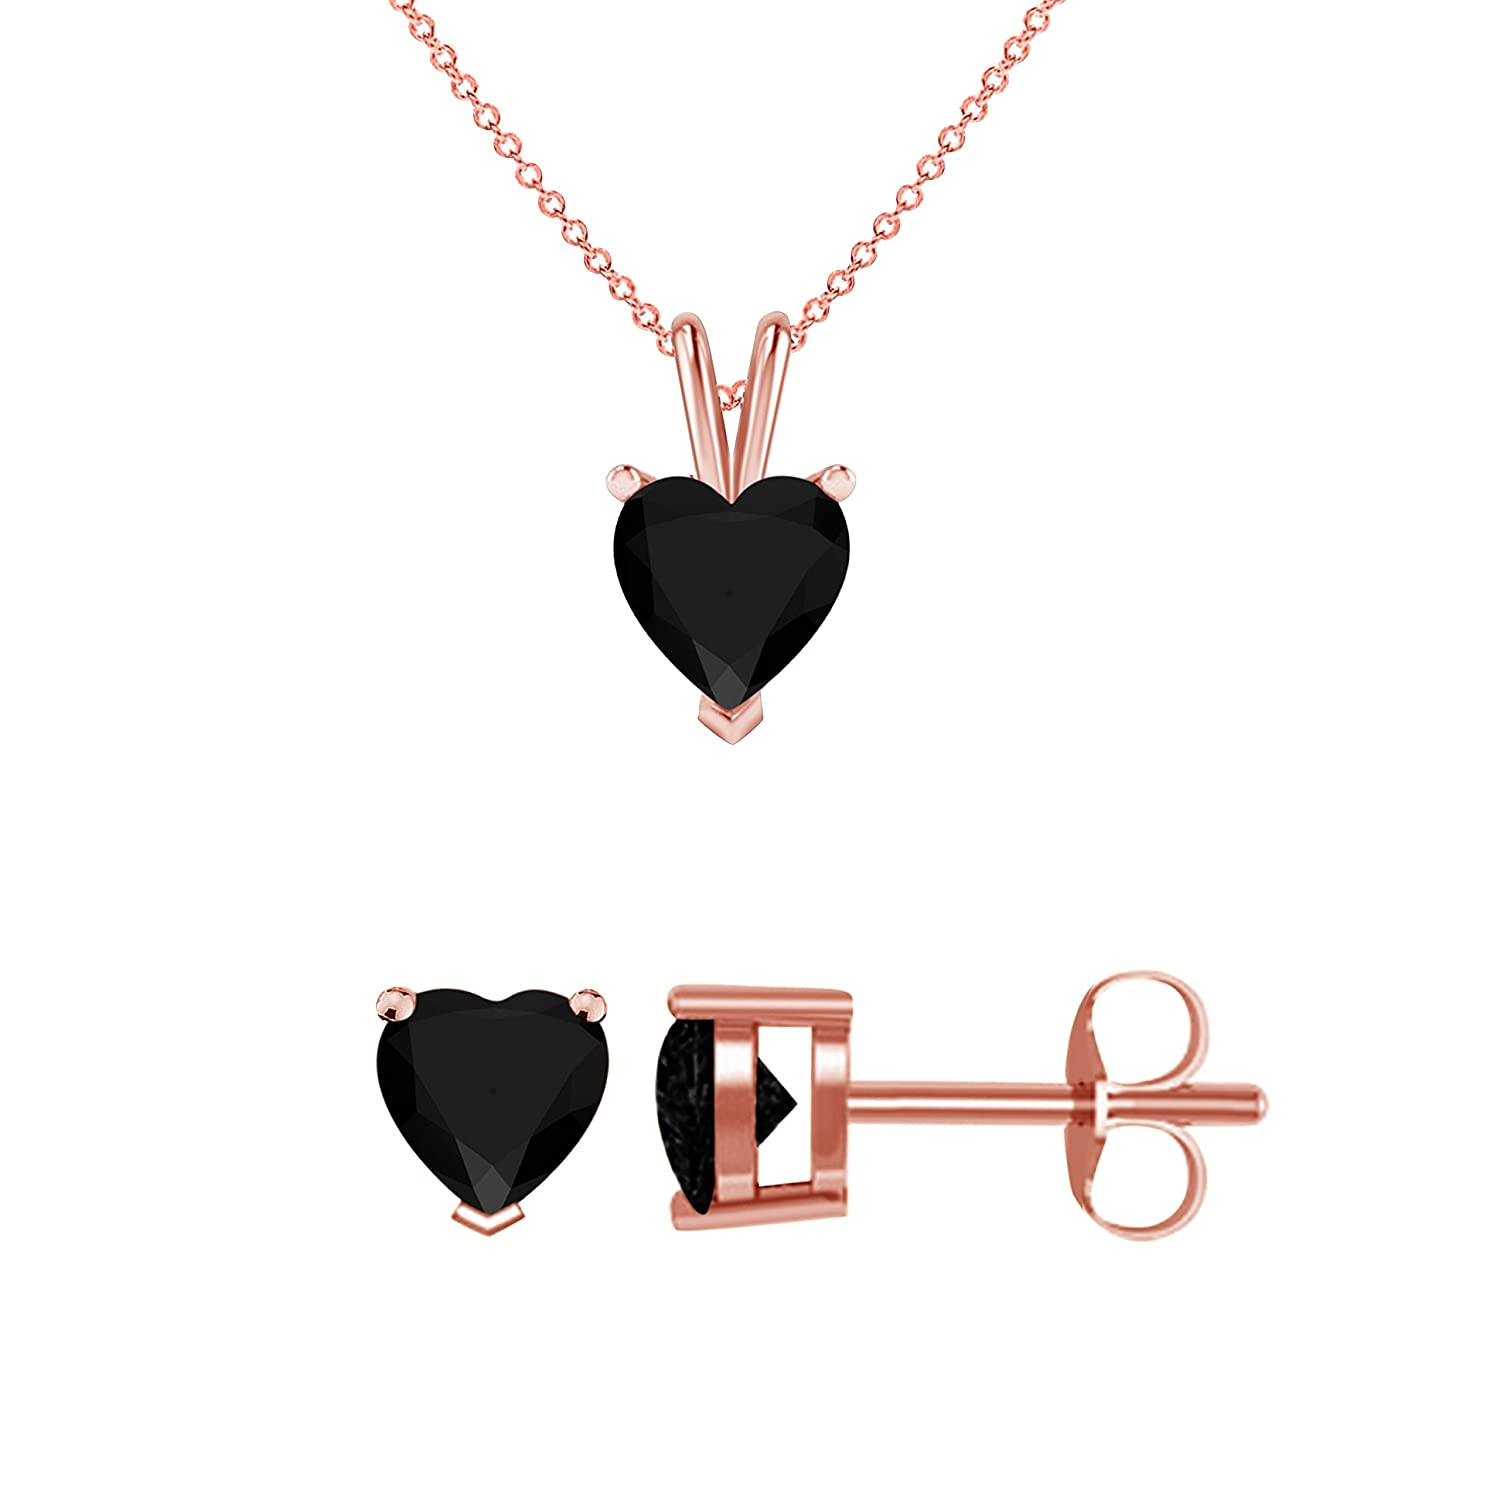 DreamJewels Heart Shape Brilliant Cut Created Black CZ Diamond Solitaire Pendant and matching Earrings for Women Jewelry Set in 14K Rose Gold Fn Alloy